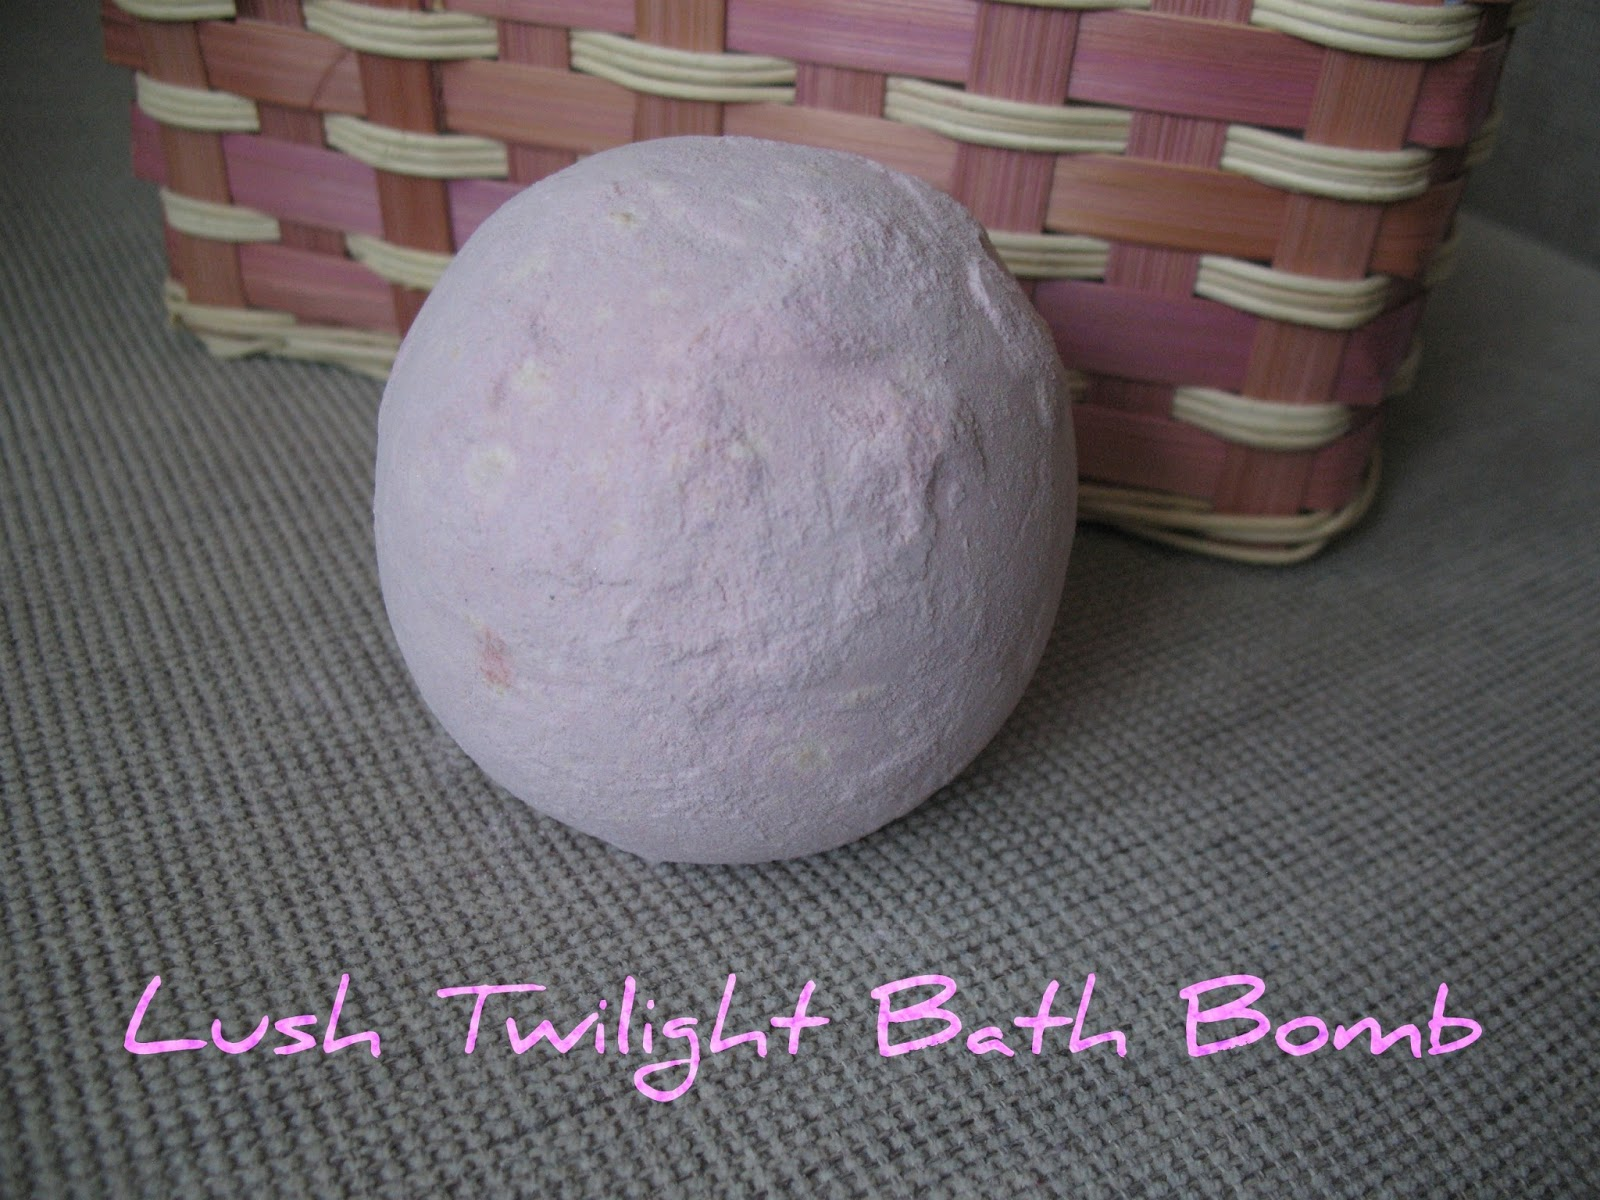 lush-twilight-bath-bomb-01